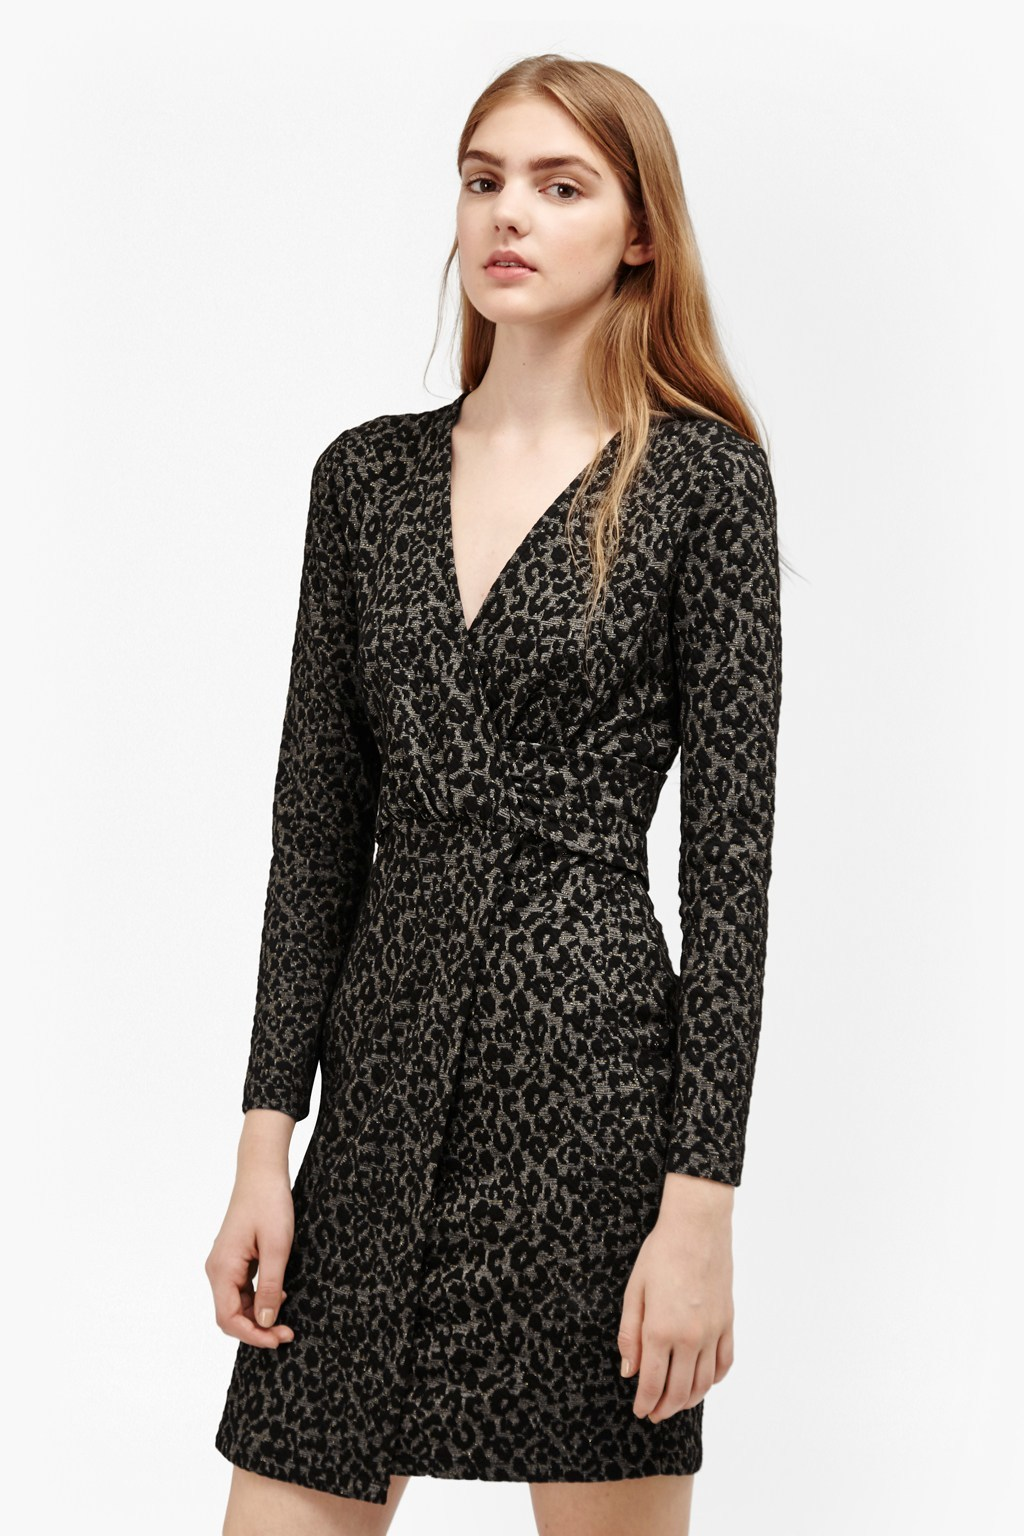 Cheetah Jacquard Wrap Front Dress Black/Gold Multi - style: faux wrap/wrap; length: mid thigh; neckline: low v-neck; fit: tailored/fitted; predominant colour: stone; secondary colour: black; occasions: evening, creative work; fibres: polyester/polyamide - 100%; sleeve length: long sleeve; sleeve style: standard; pattern type: fabric; pattern size: standard; pattern: animal print; texture group: brocade/jacquard; season: a/w 2016; wardrobe: highlight